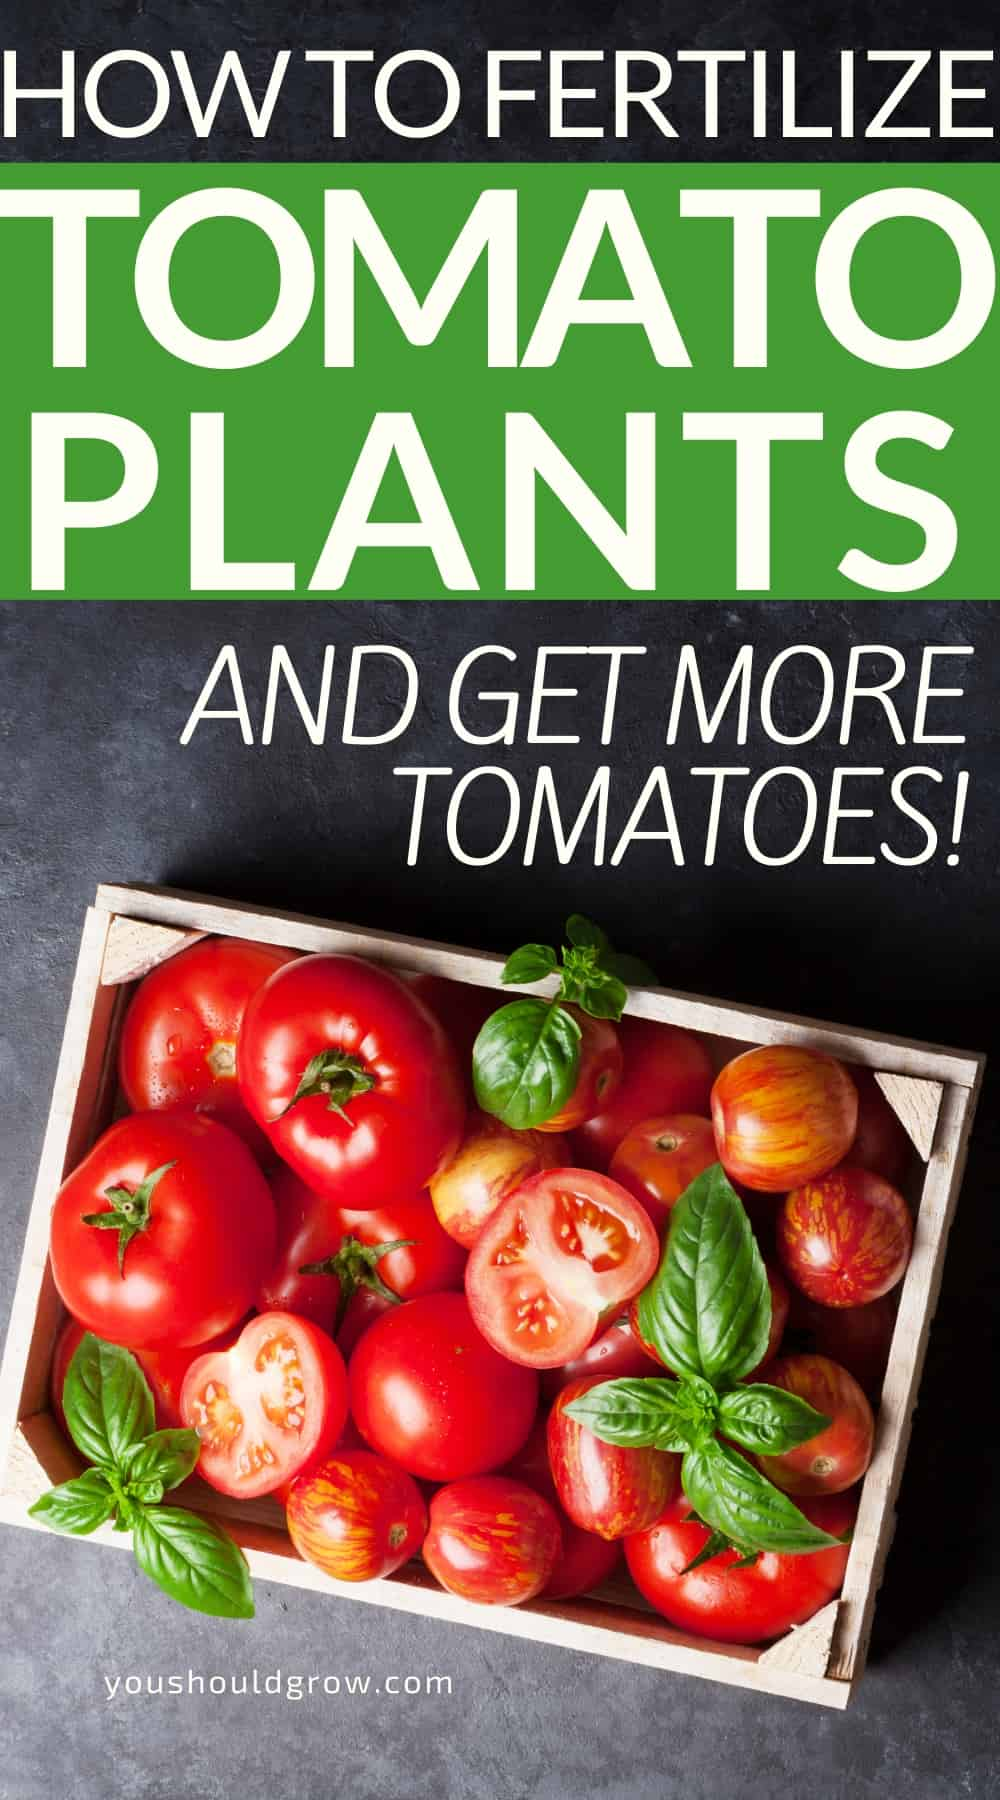 Growing tomatoes is not rewarding unless you get to eat some! Knowing how to fertilize tomatoes will make all the difference in how many tomatoes you get this summer. Homemade tomato fertilizer ideas and recipes. Want to know how to fertilize tomatoes? Get the tips and tricks you need to know here.  Beginner gardening, vegetable gardening tips